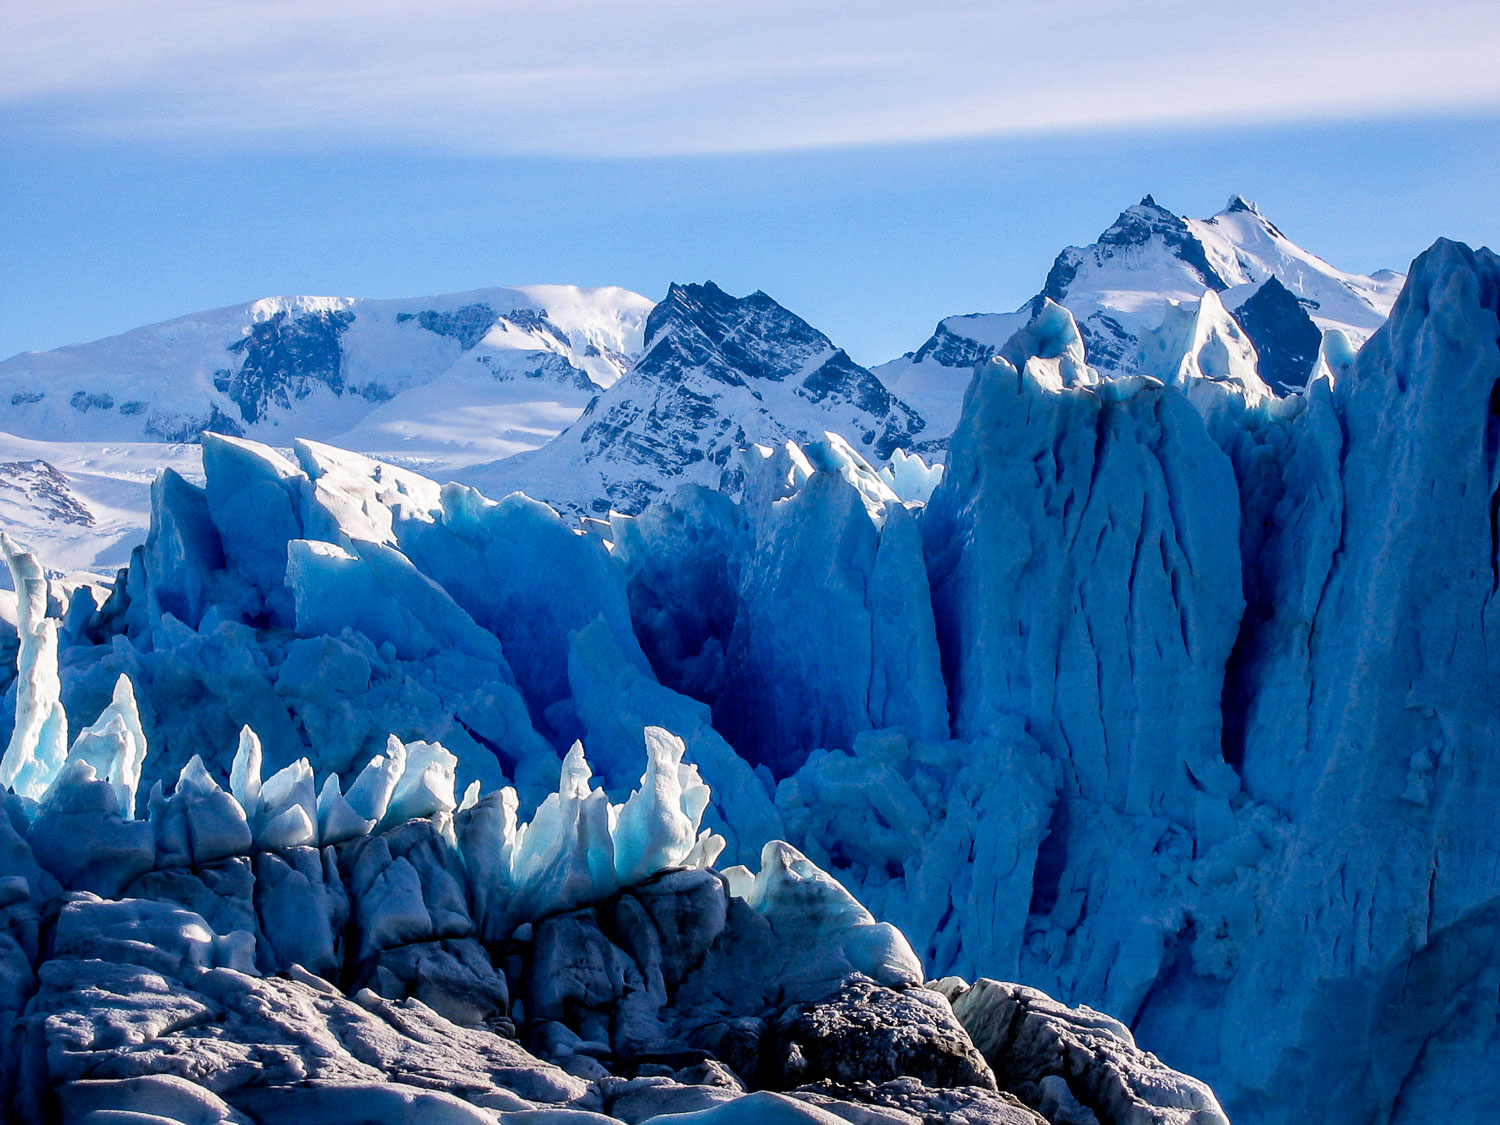 A Close-up Photograph Showing The Blue Ice Of The Perito Moreno Glacier In Argentina.